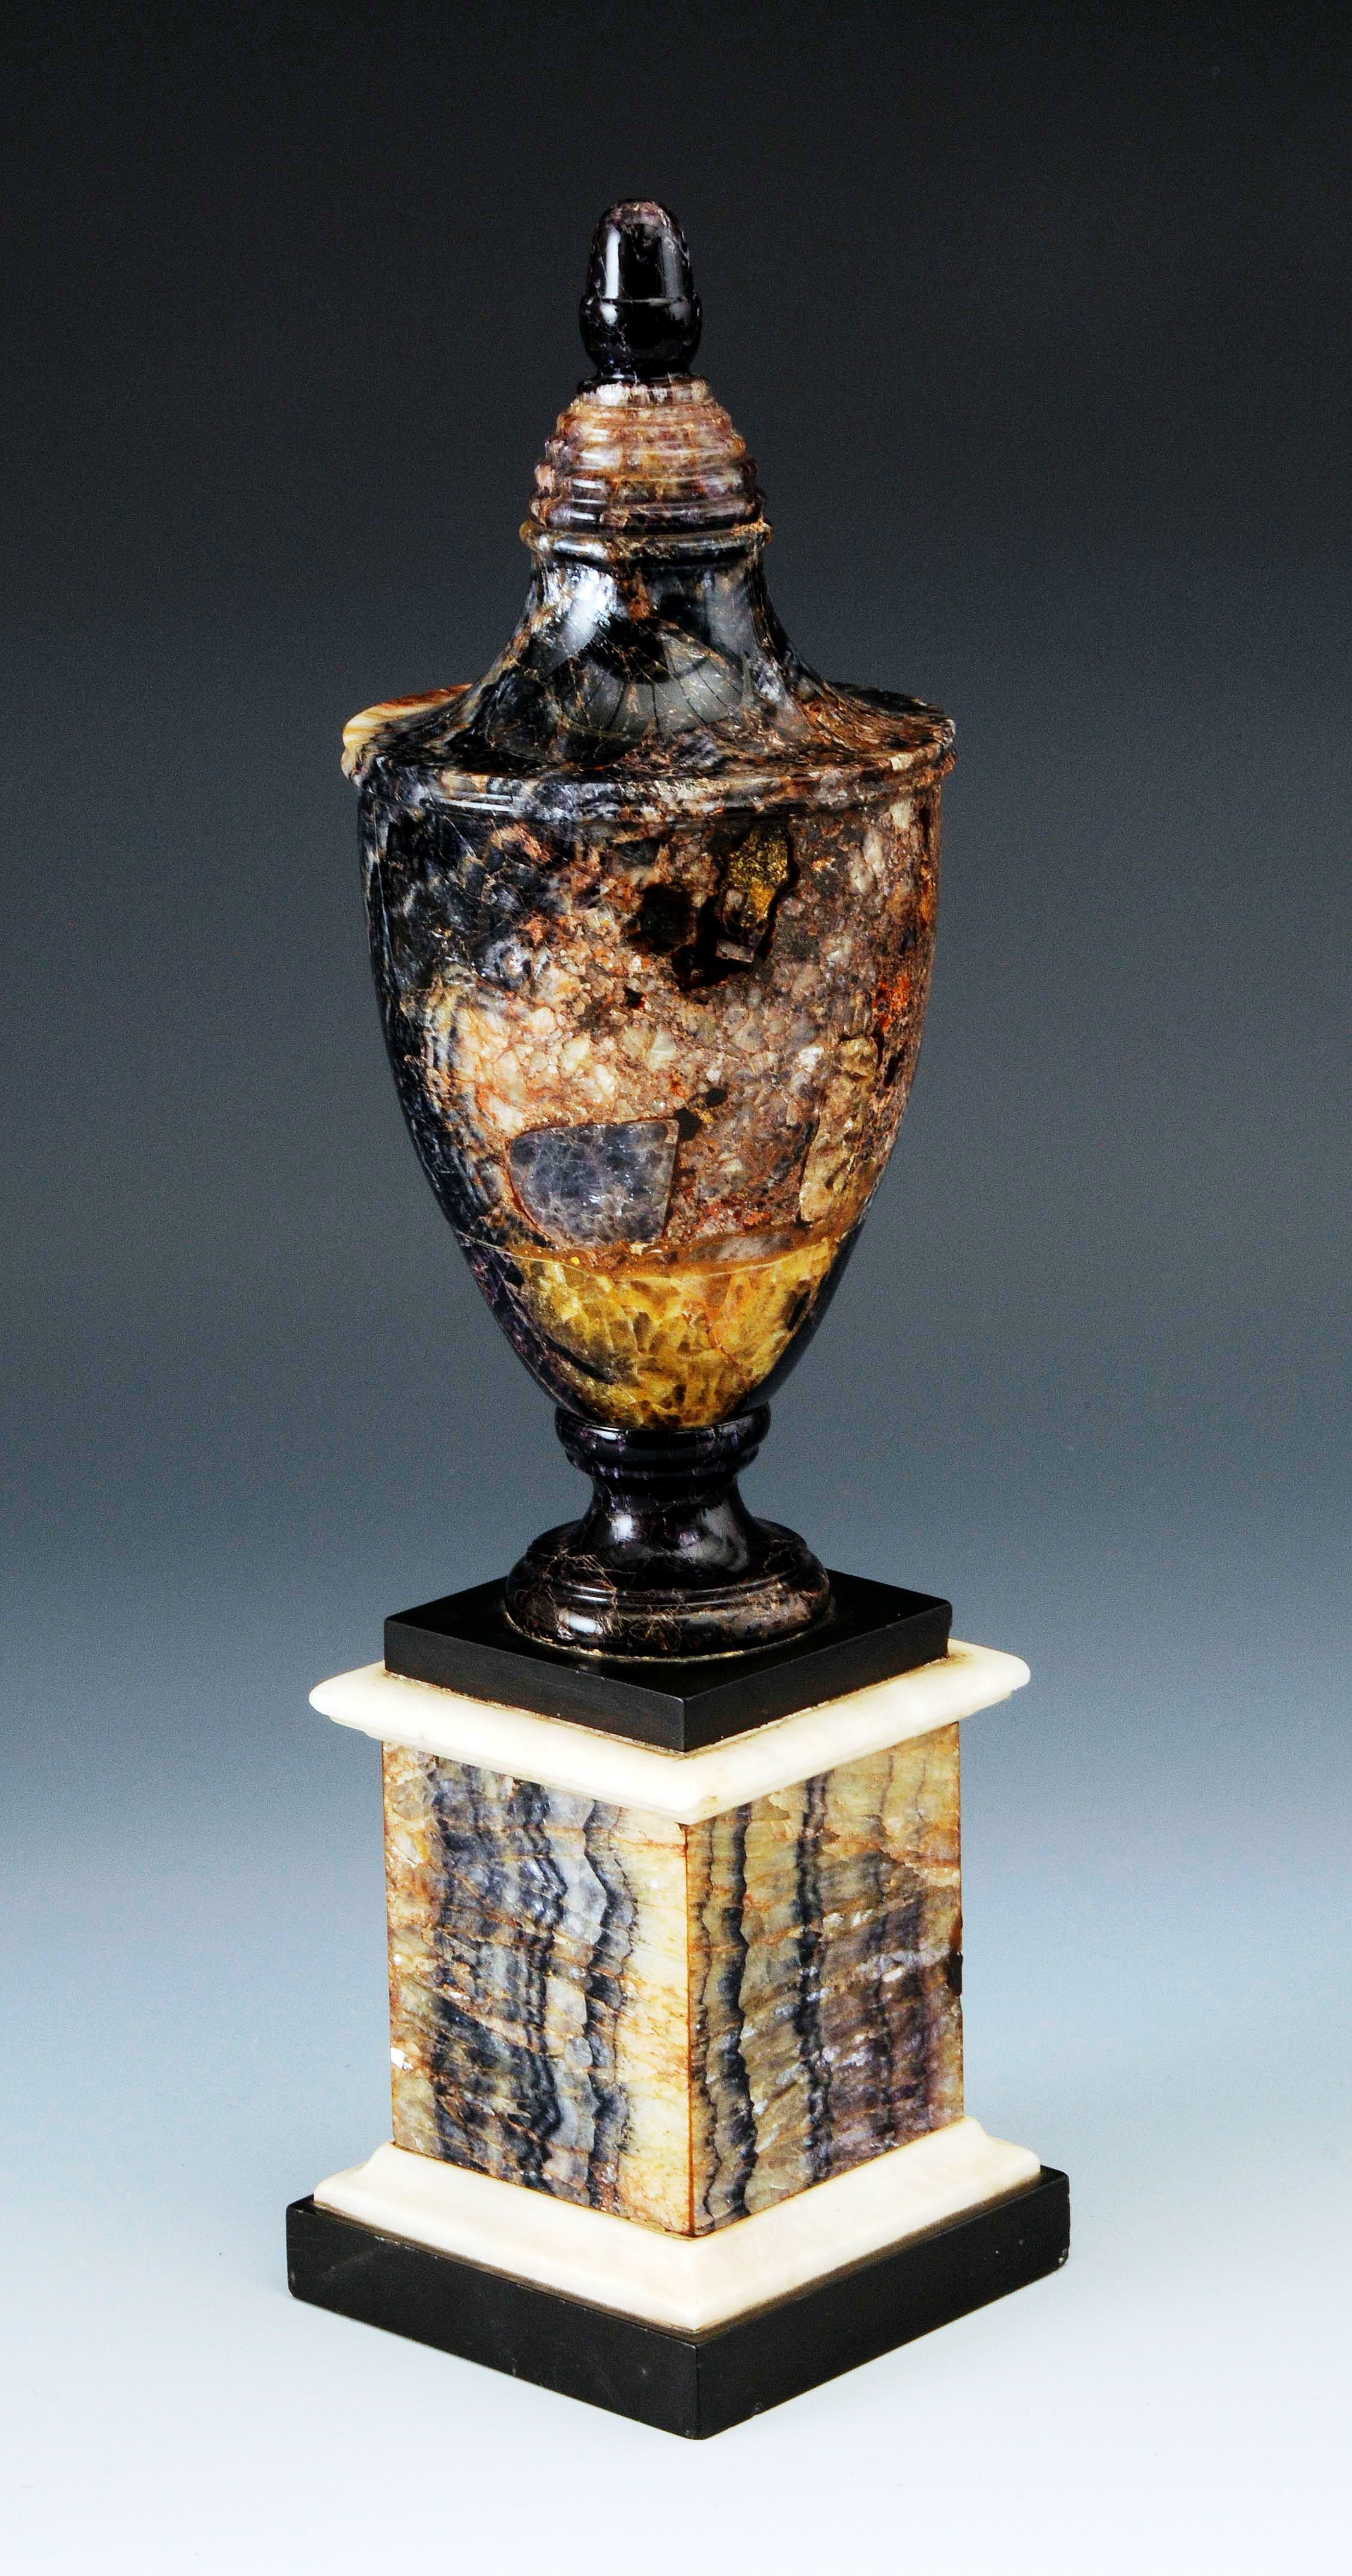 21 Awesome Blue Vase Award 2021 free download blue vase award of wow blue john vases and glass pinterest urn marbles and porcelain intended for wow blue john